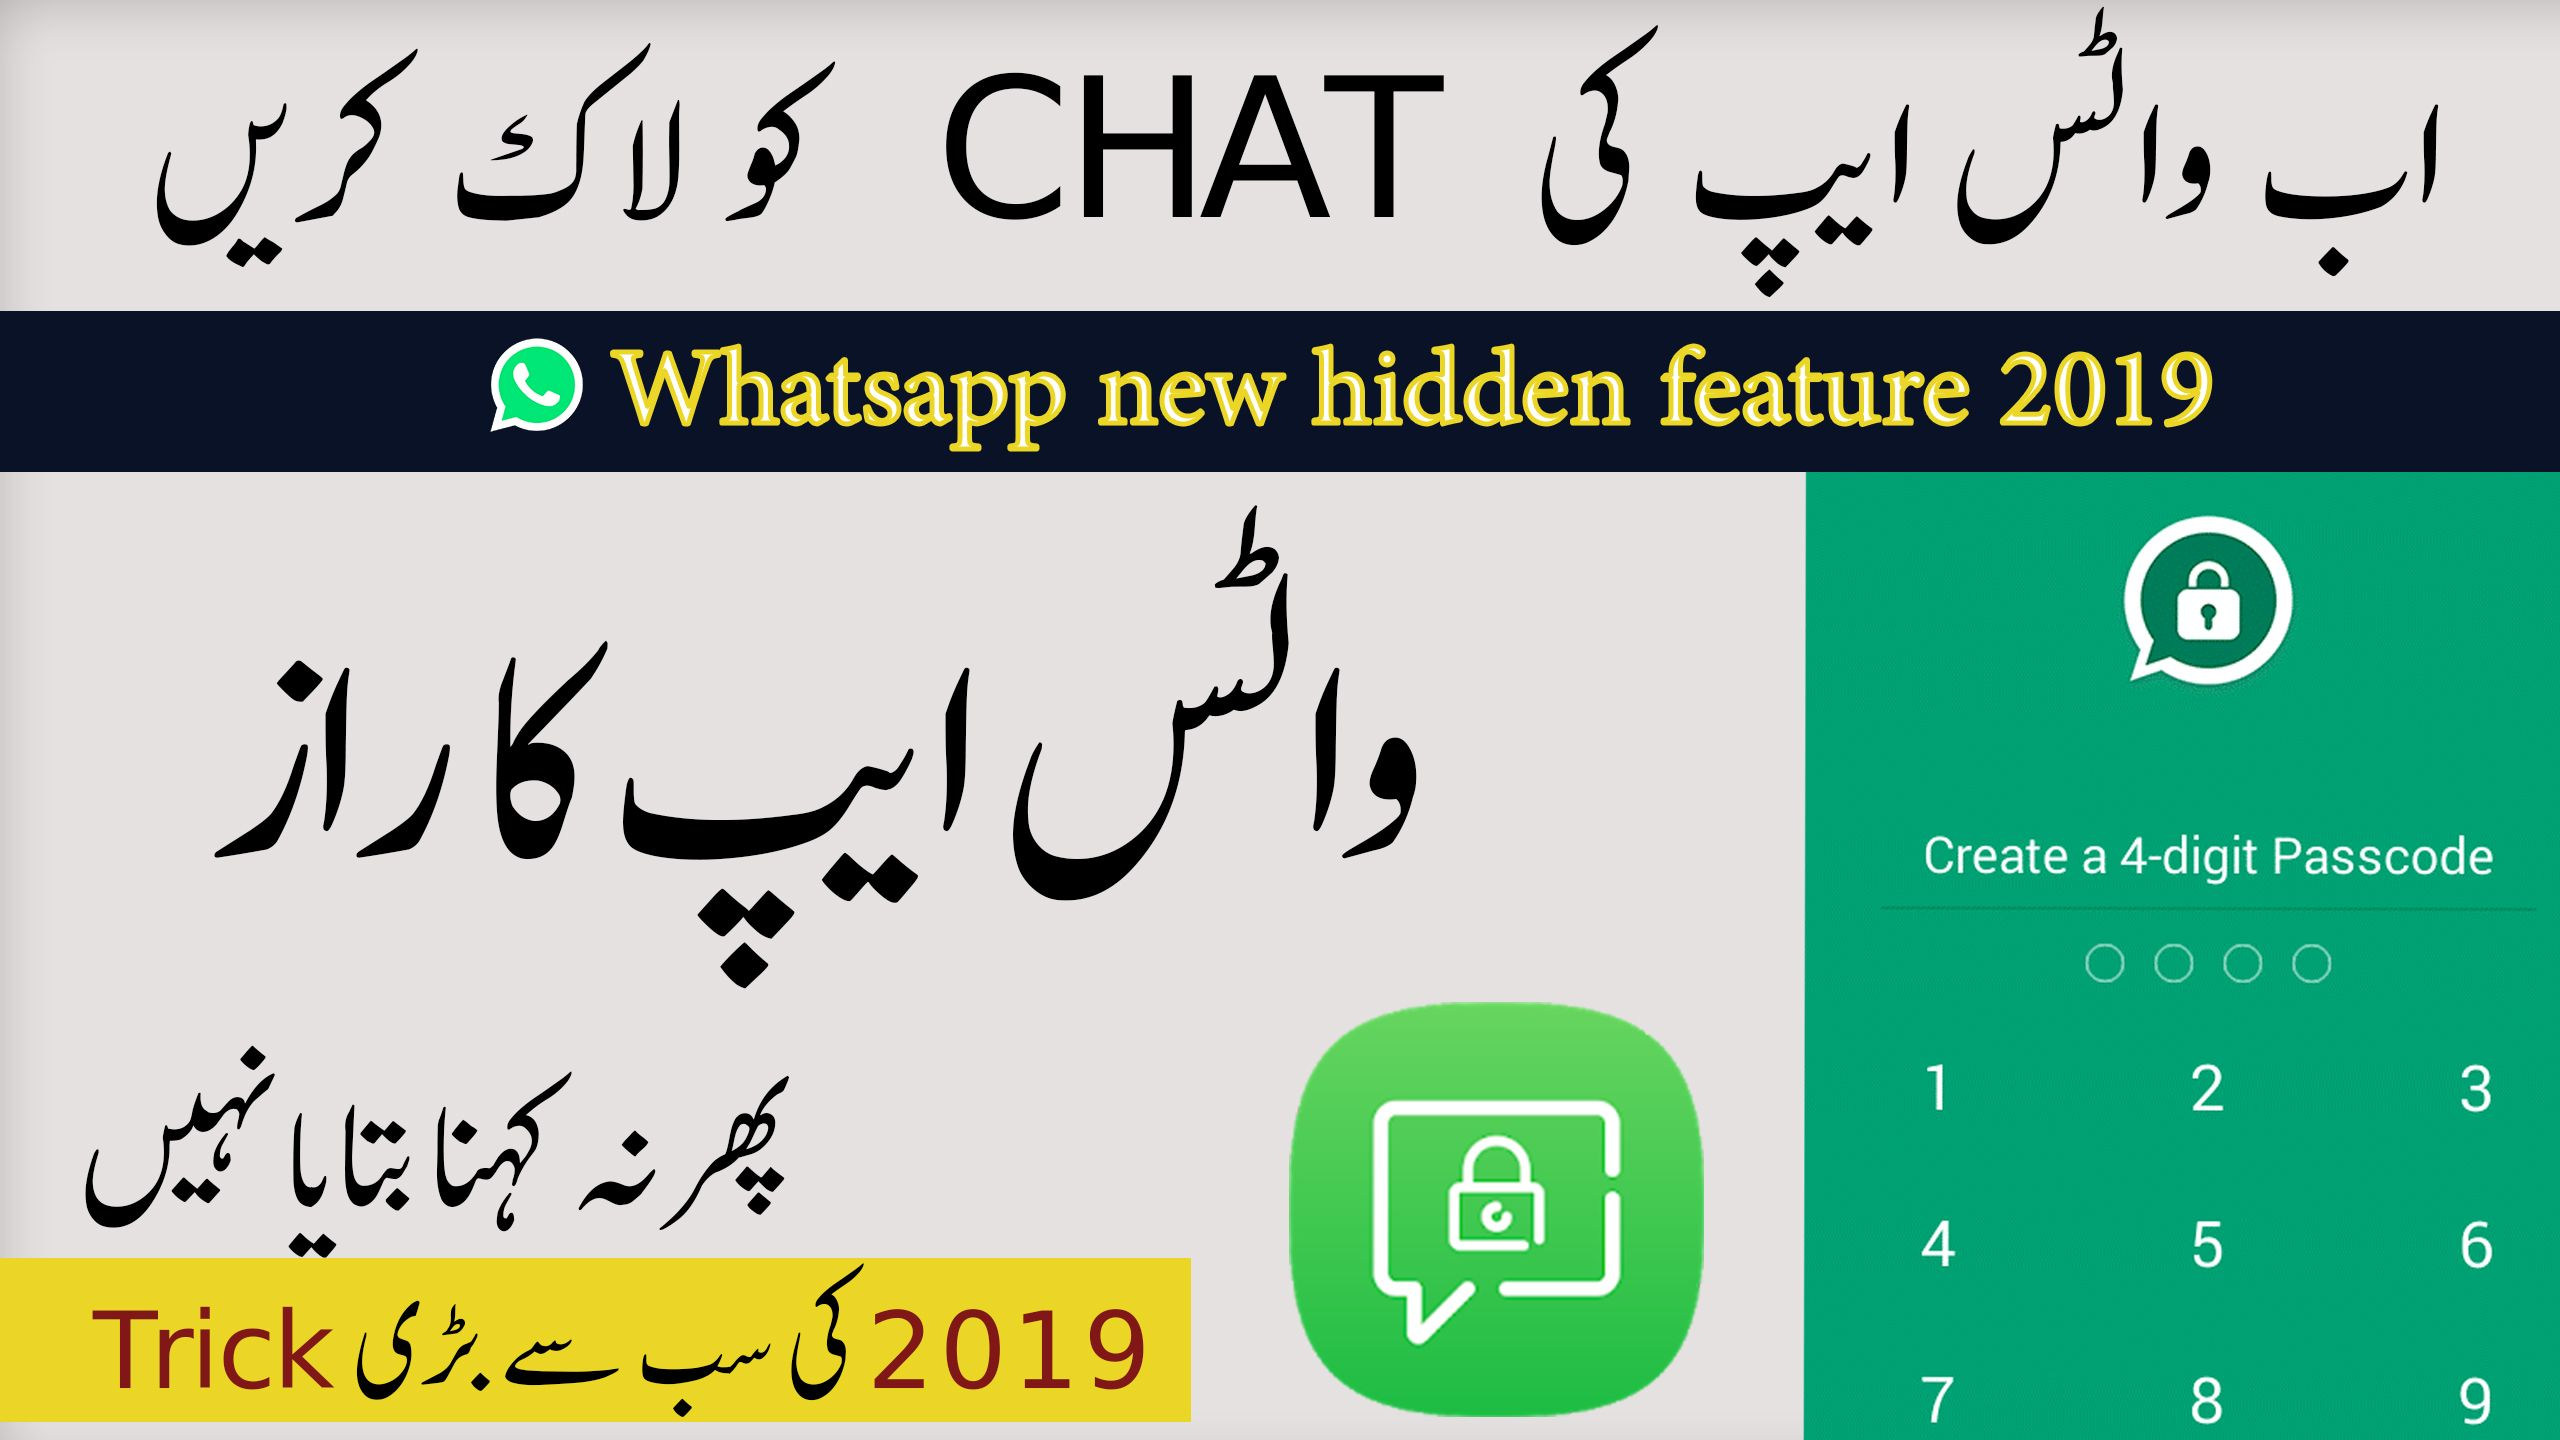 Pin by thedownload117 on Technical Ali Chat app, Video